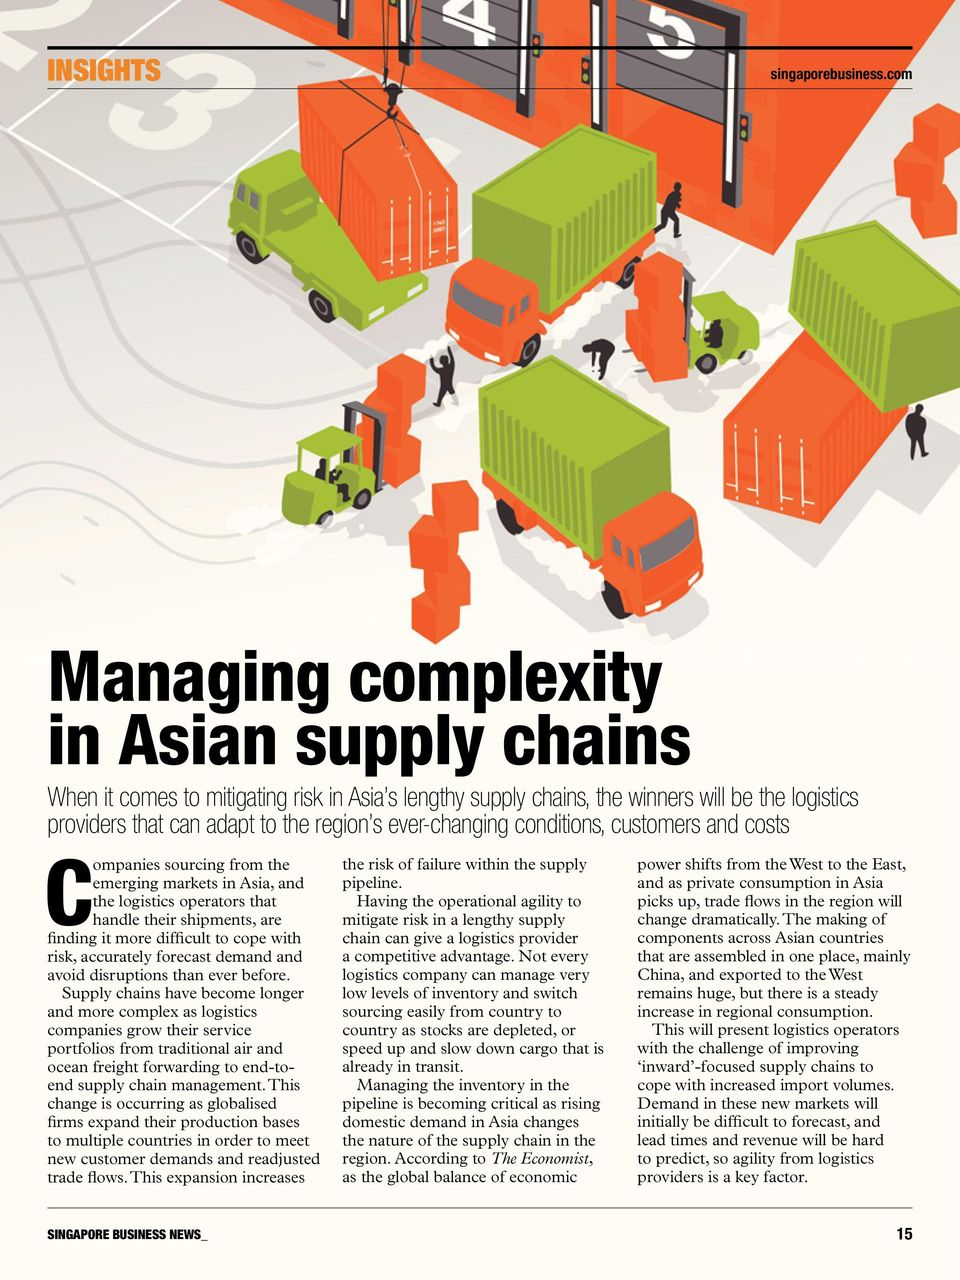 ever-changing conditions, customers and costs Companies sourcing from the emerging markets in Asia, and the logistics operators that handle their shipments, are finding it more difficult to cope with